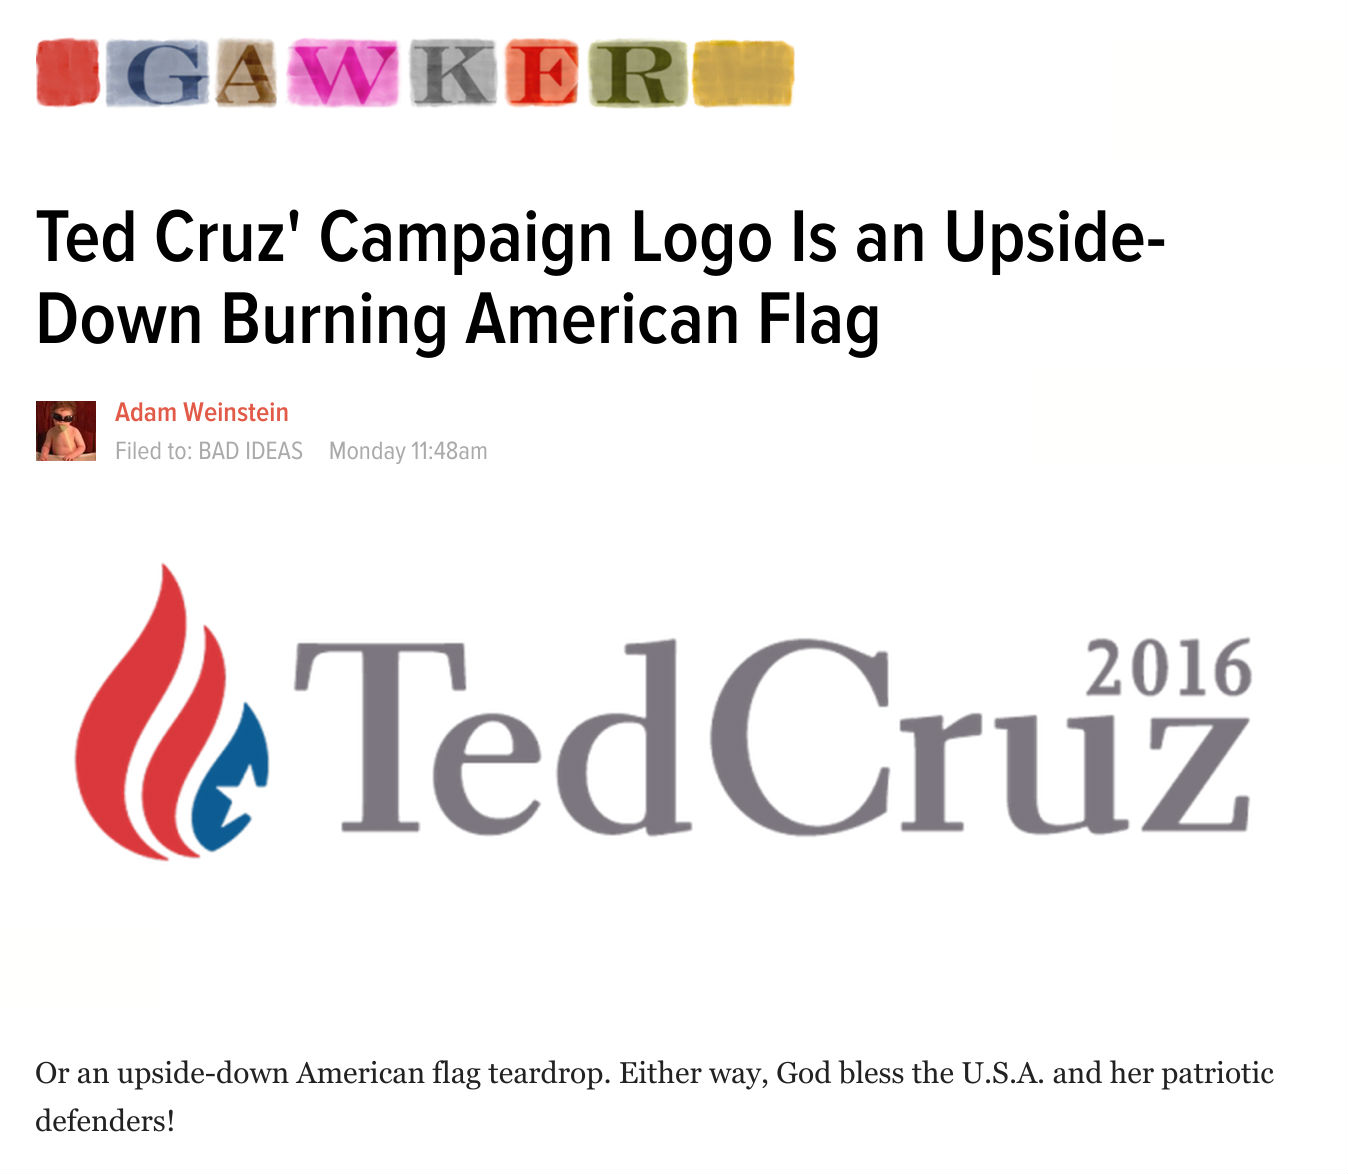 Gawker: Ted Cruz' Campaign Logo Is an Upside-Down Burning American Flag